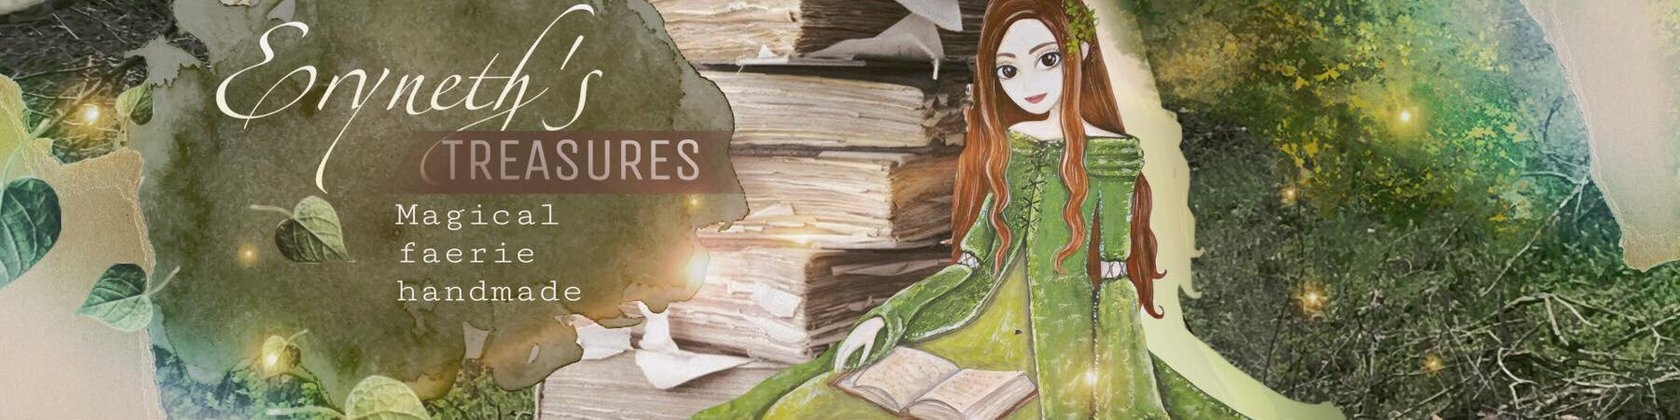 Eryneth's Treasures (@dulindwen) Cover Image